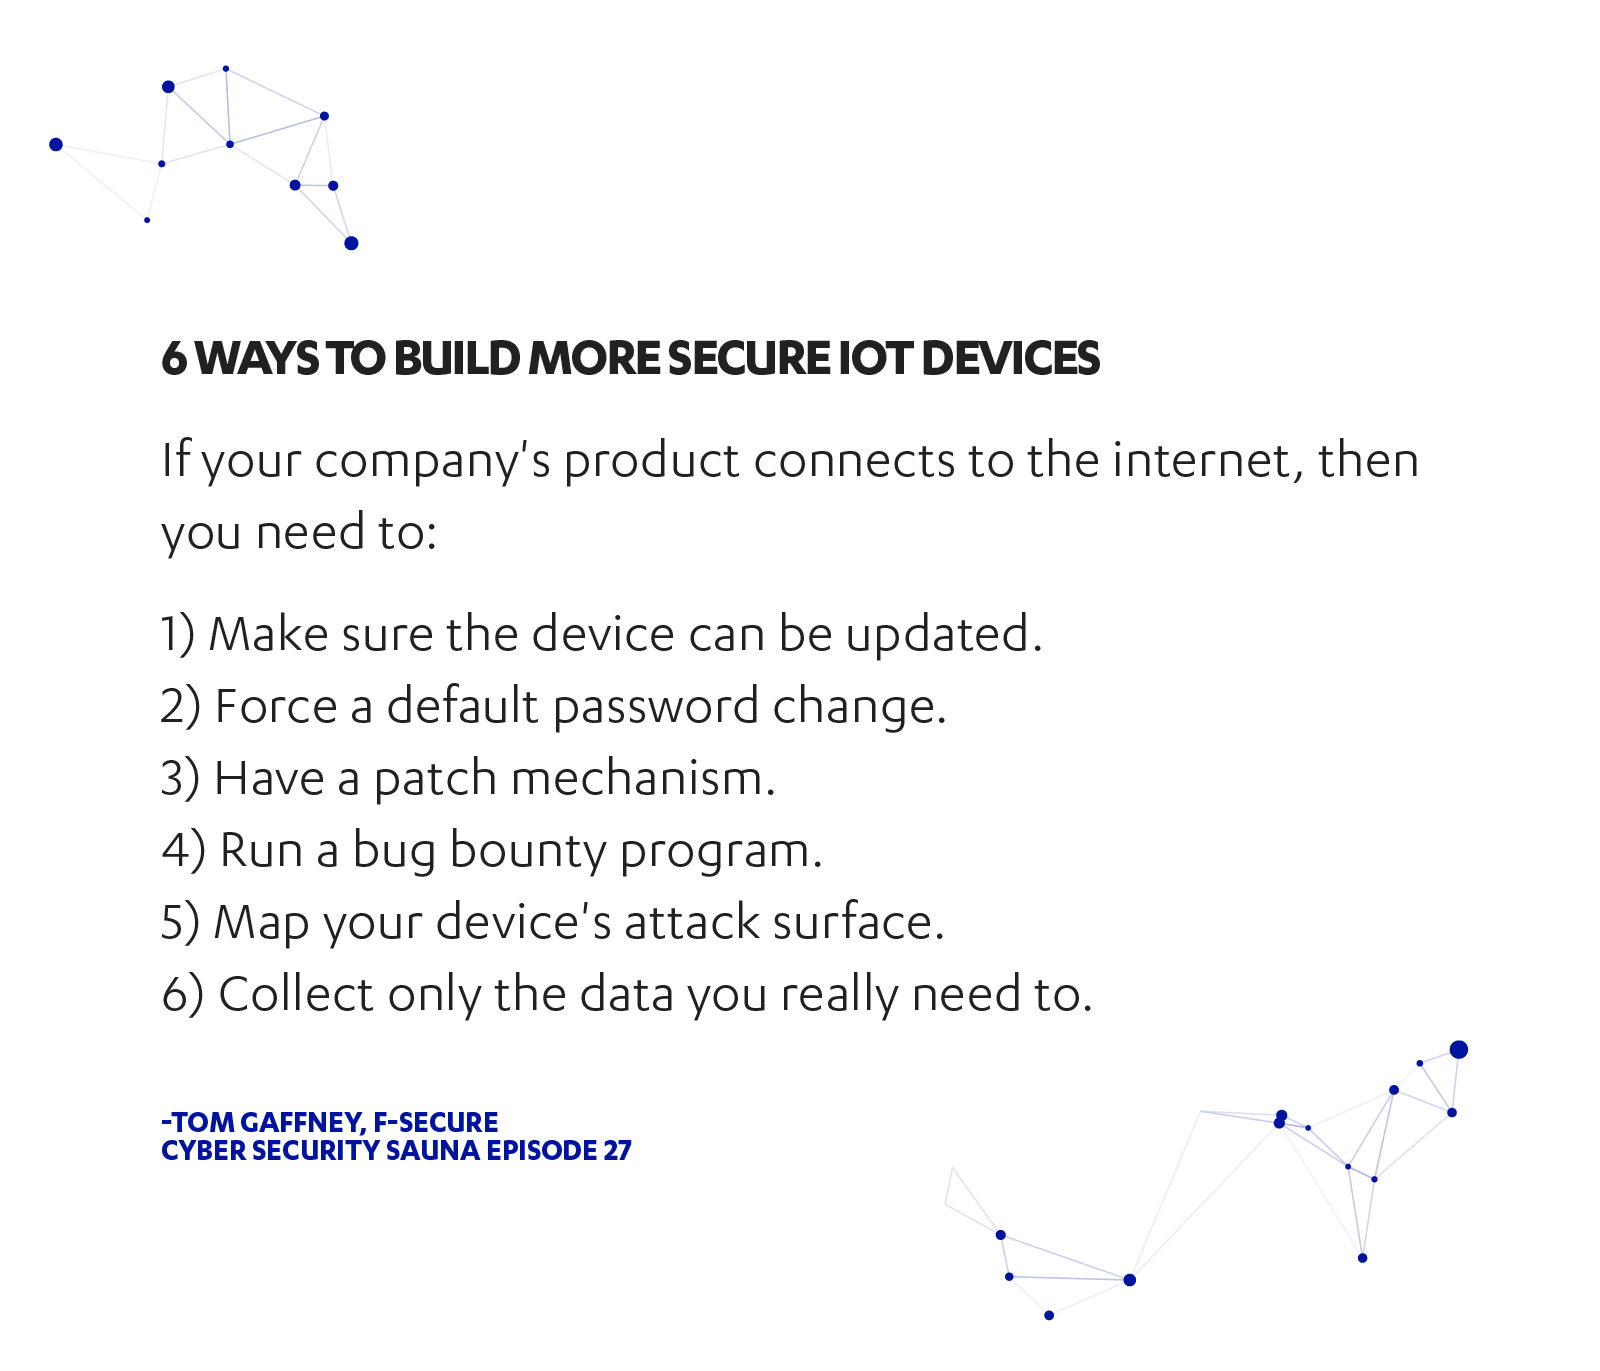 6 ways to build more secure IoT devices